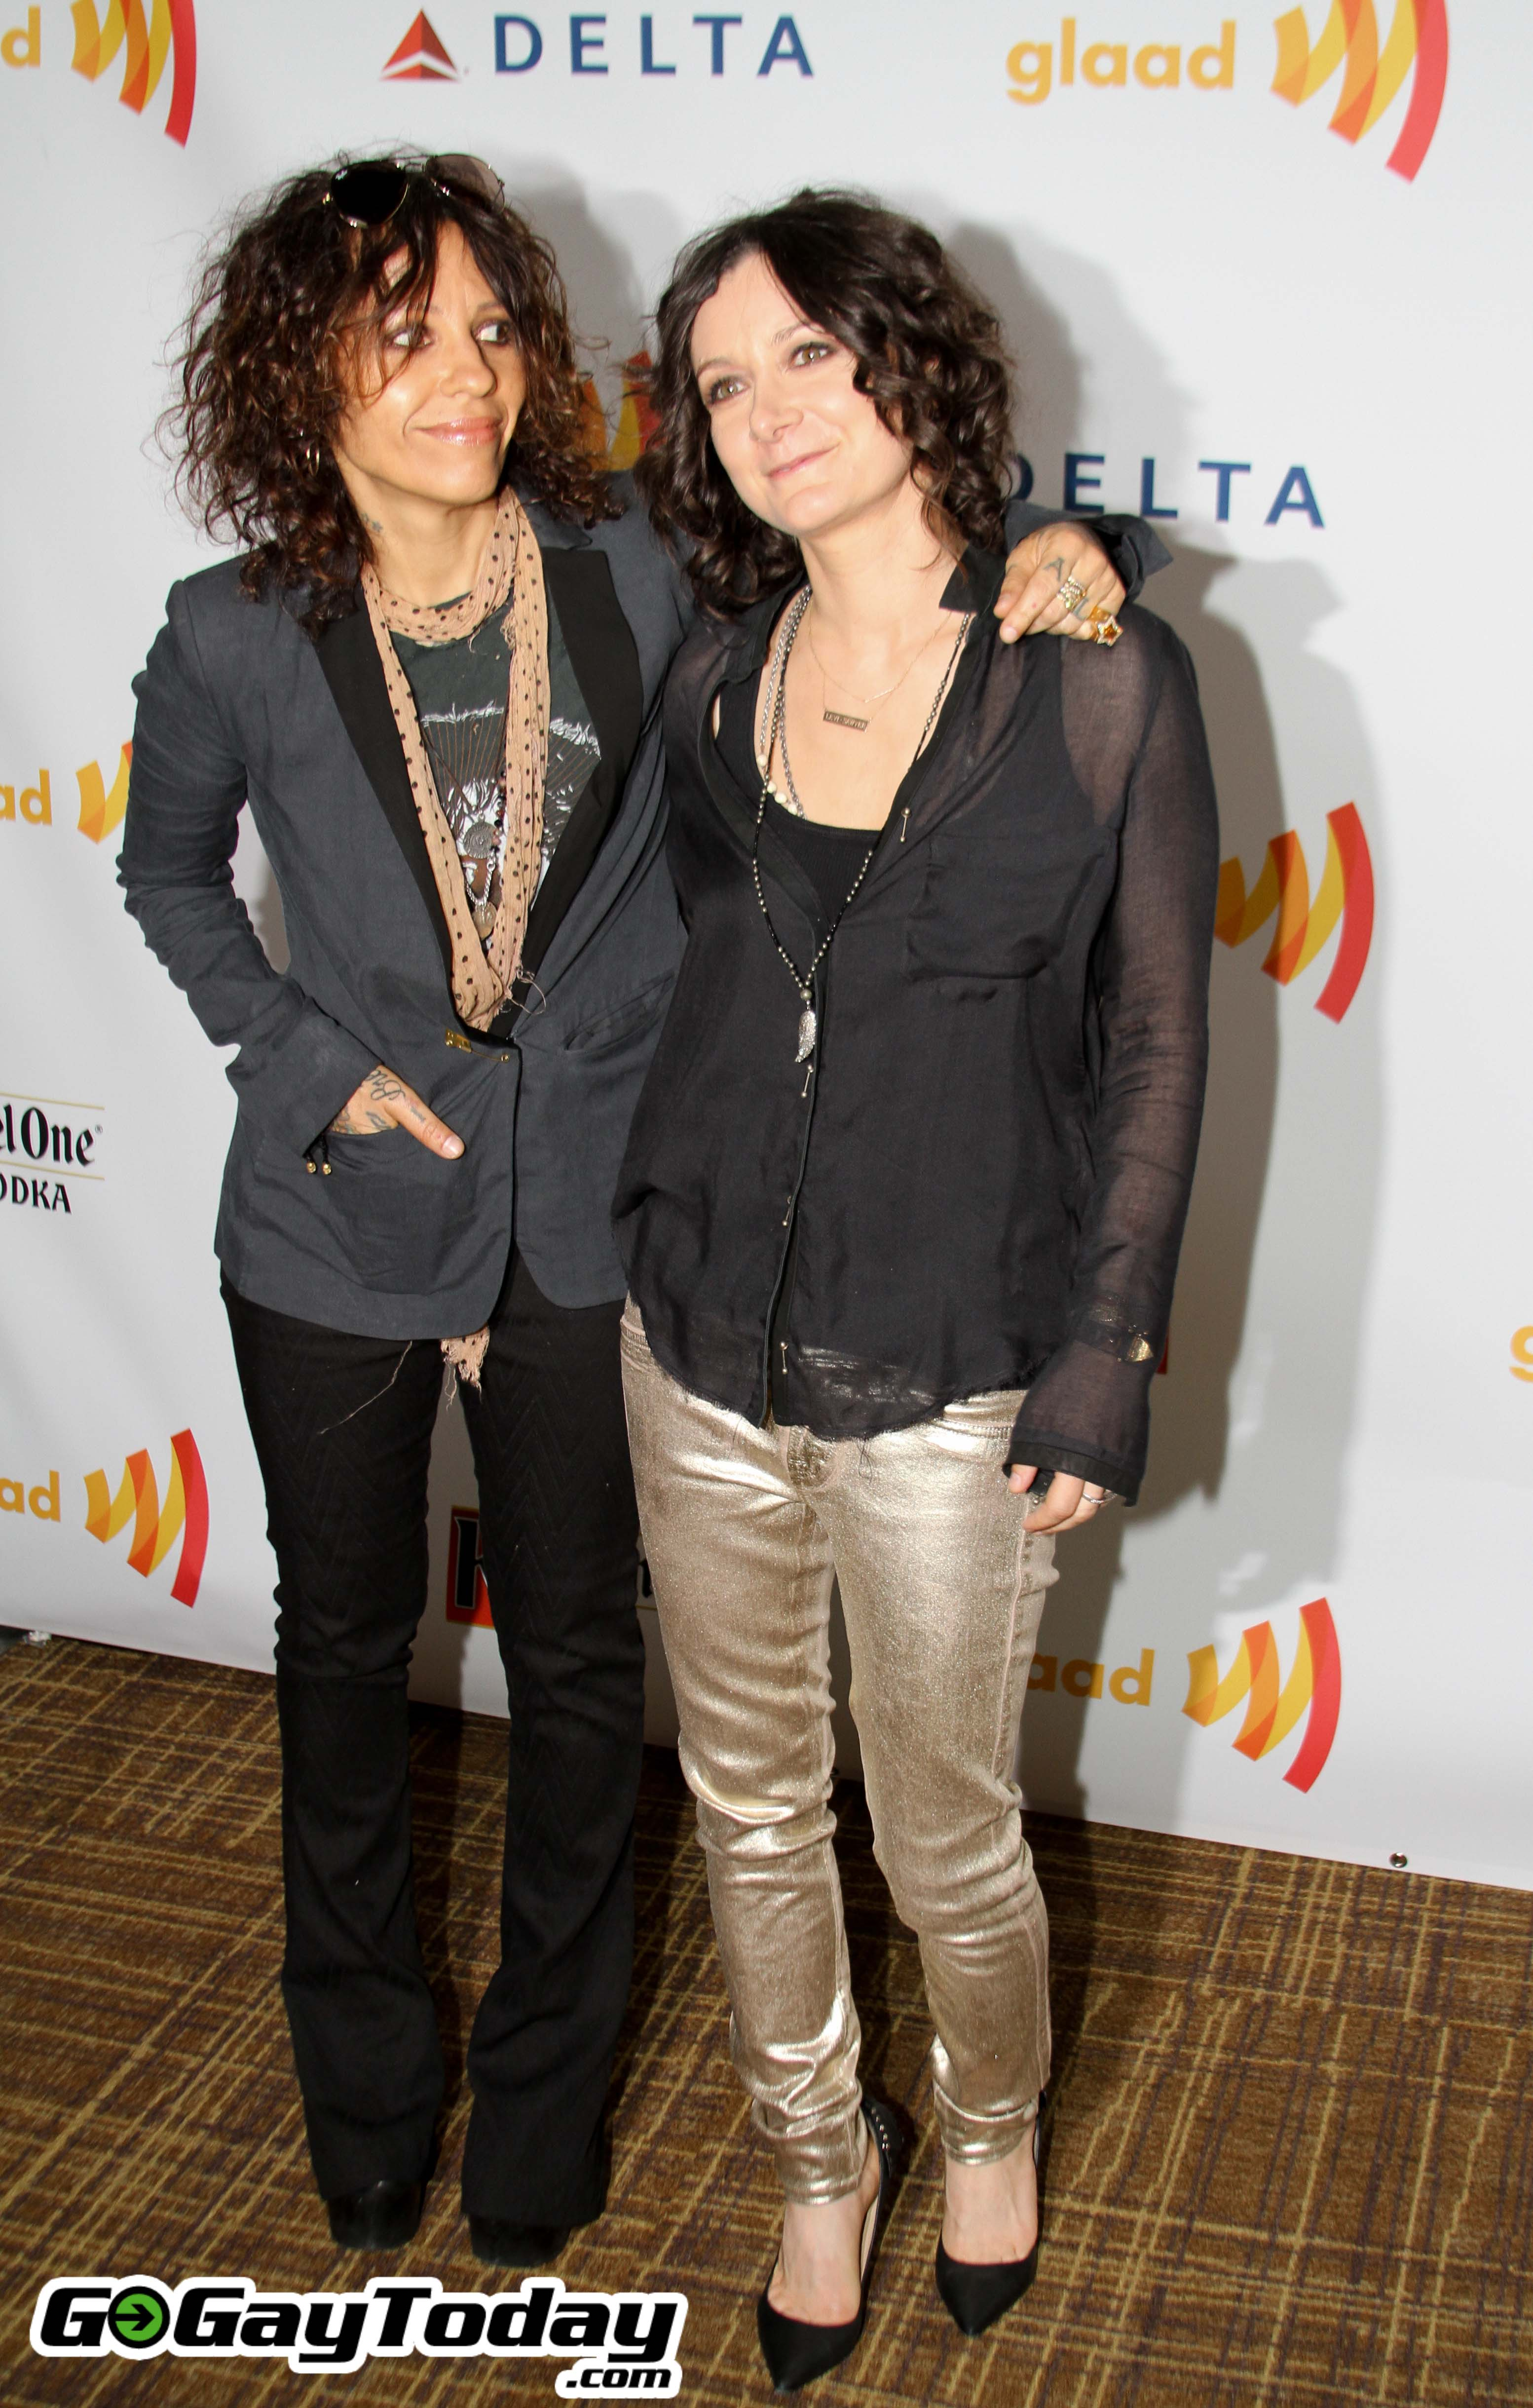 Related Keywords & Suggestions for linda perry